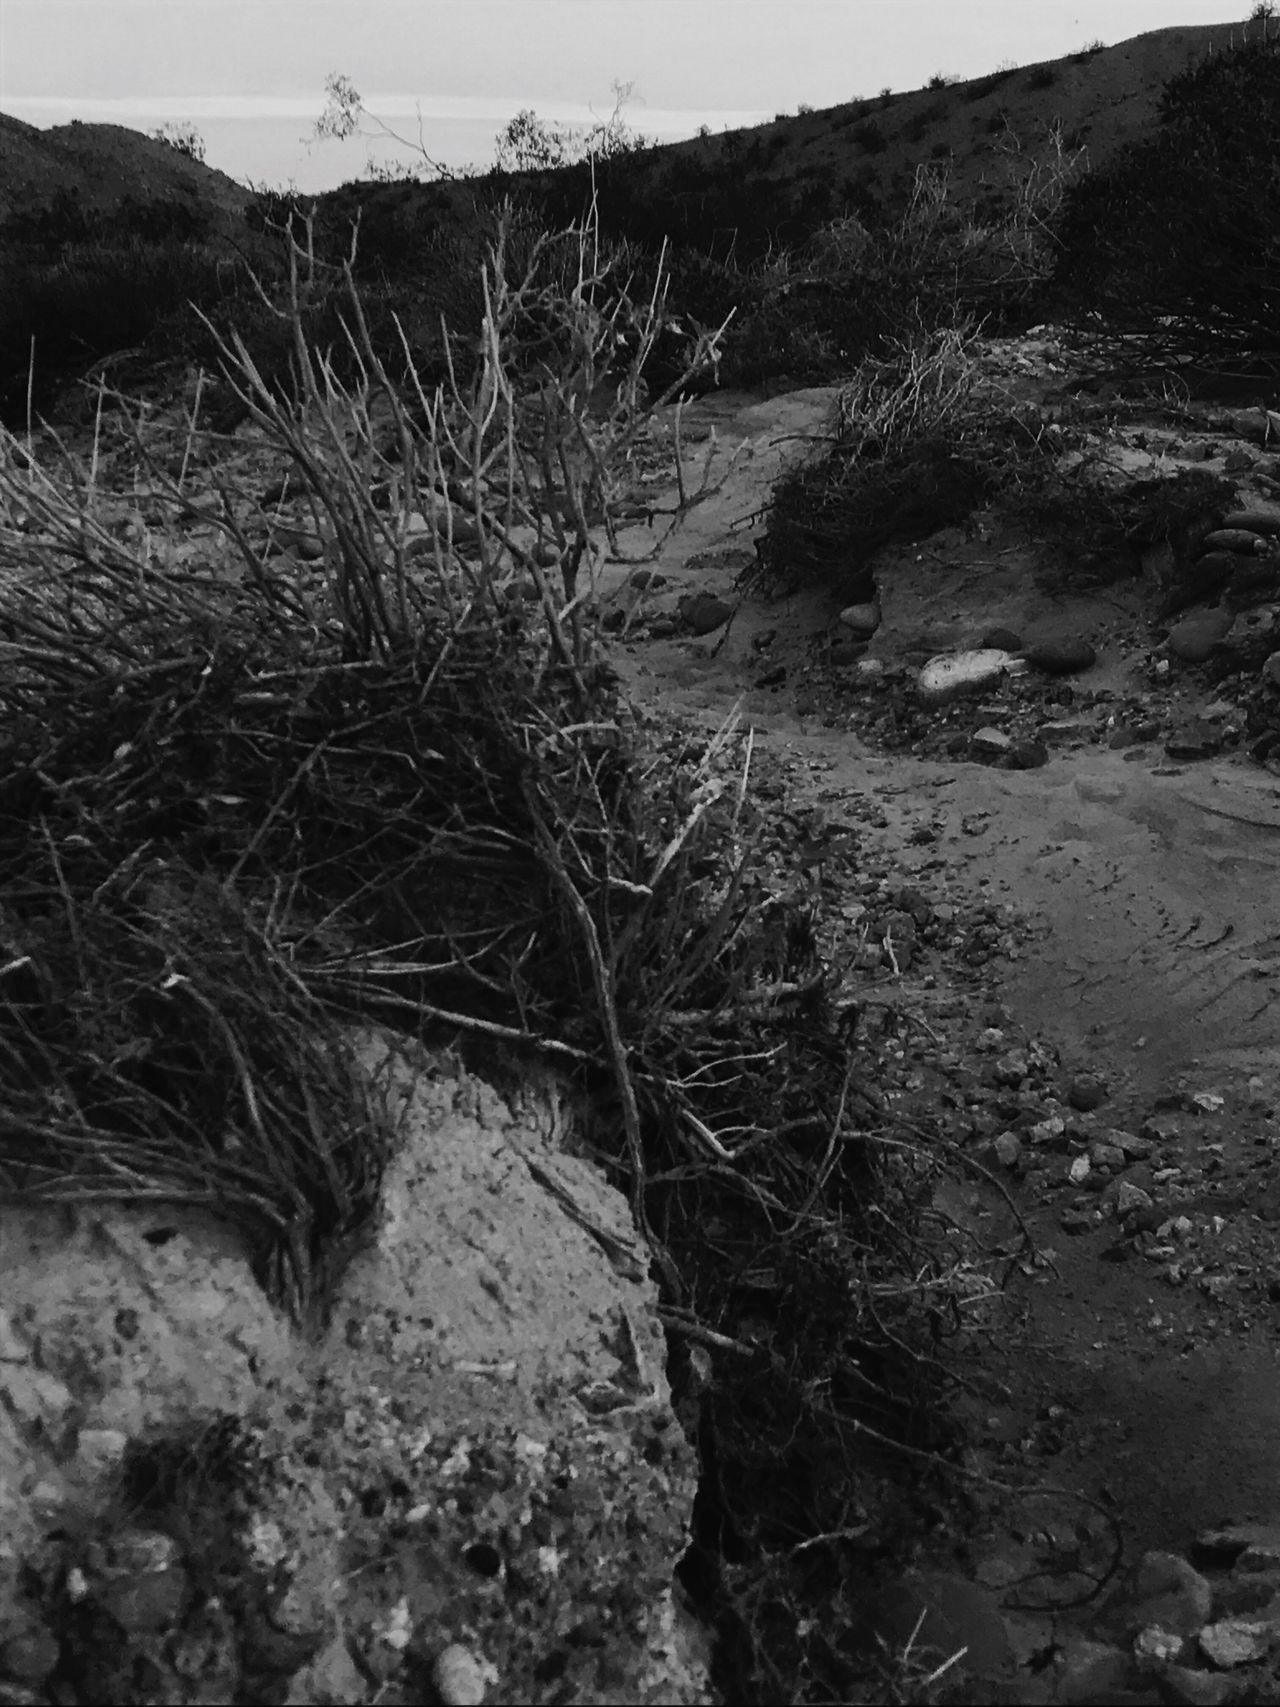 Nature Outdoors Growth Day Plant No People Tranquility Landscape Grass Dry Wash Desert Flora Textures In Nature Black And White Photography